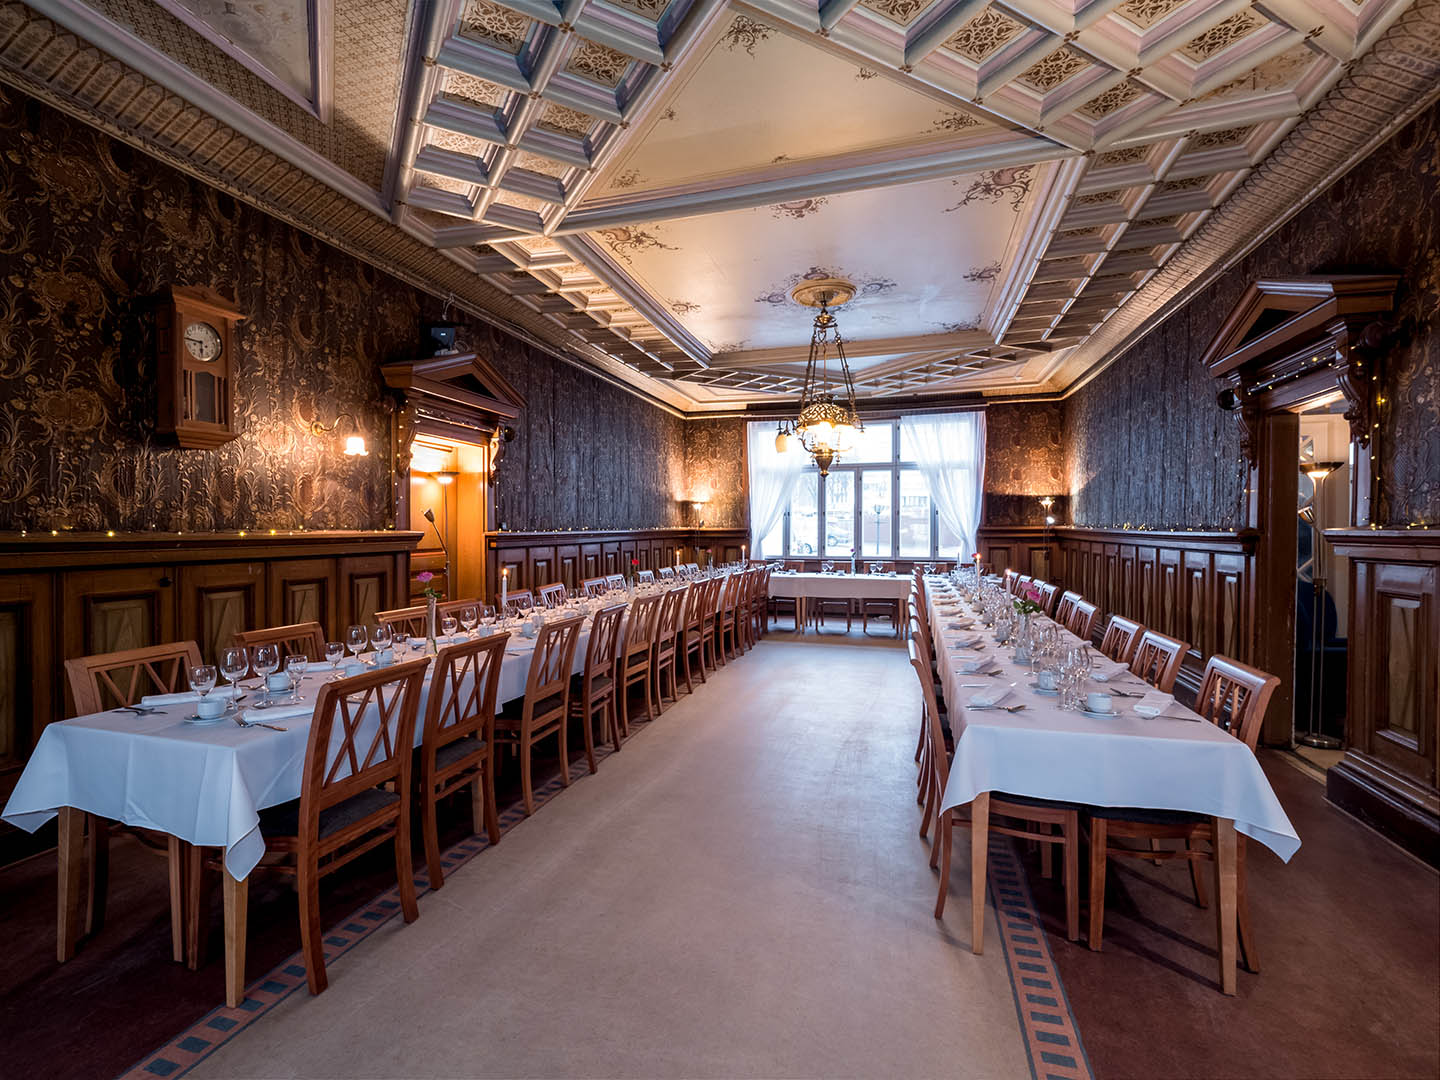 Restaurant Bacchus and Svenska Klubben, the beautiful decor of the room gives every event a luxurious feel